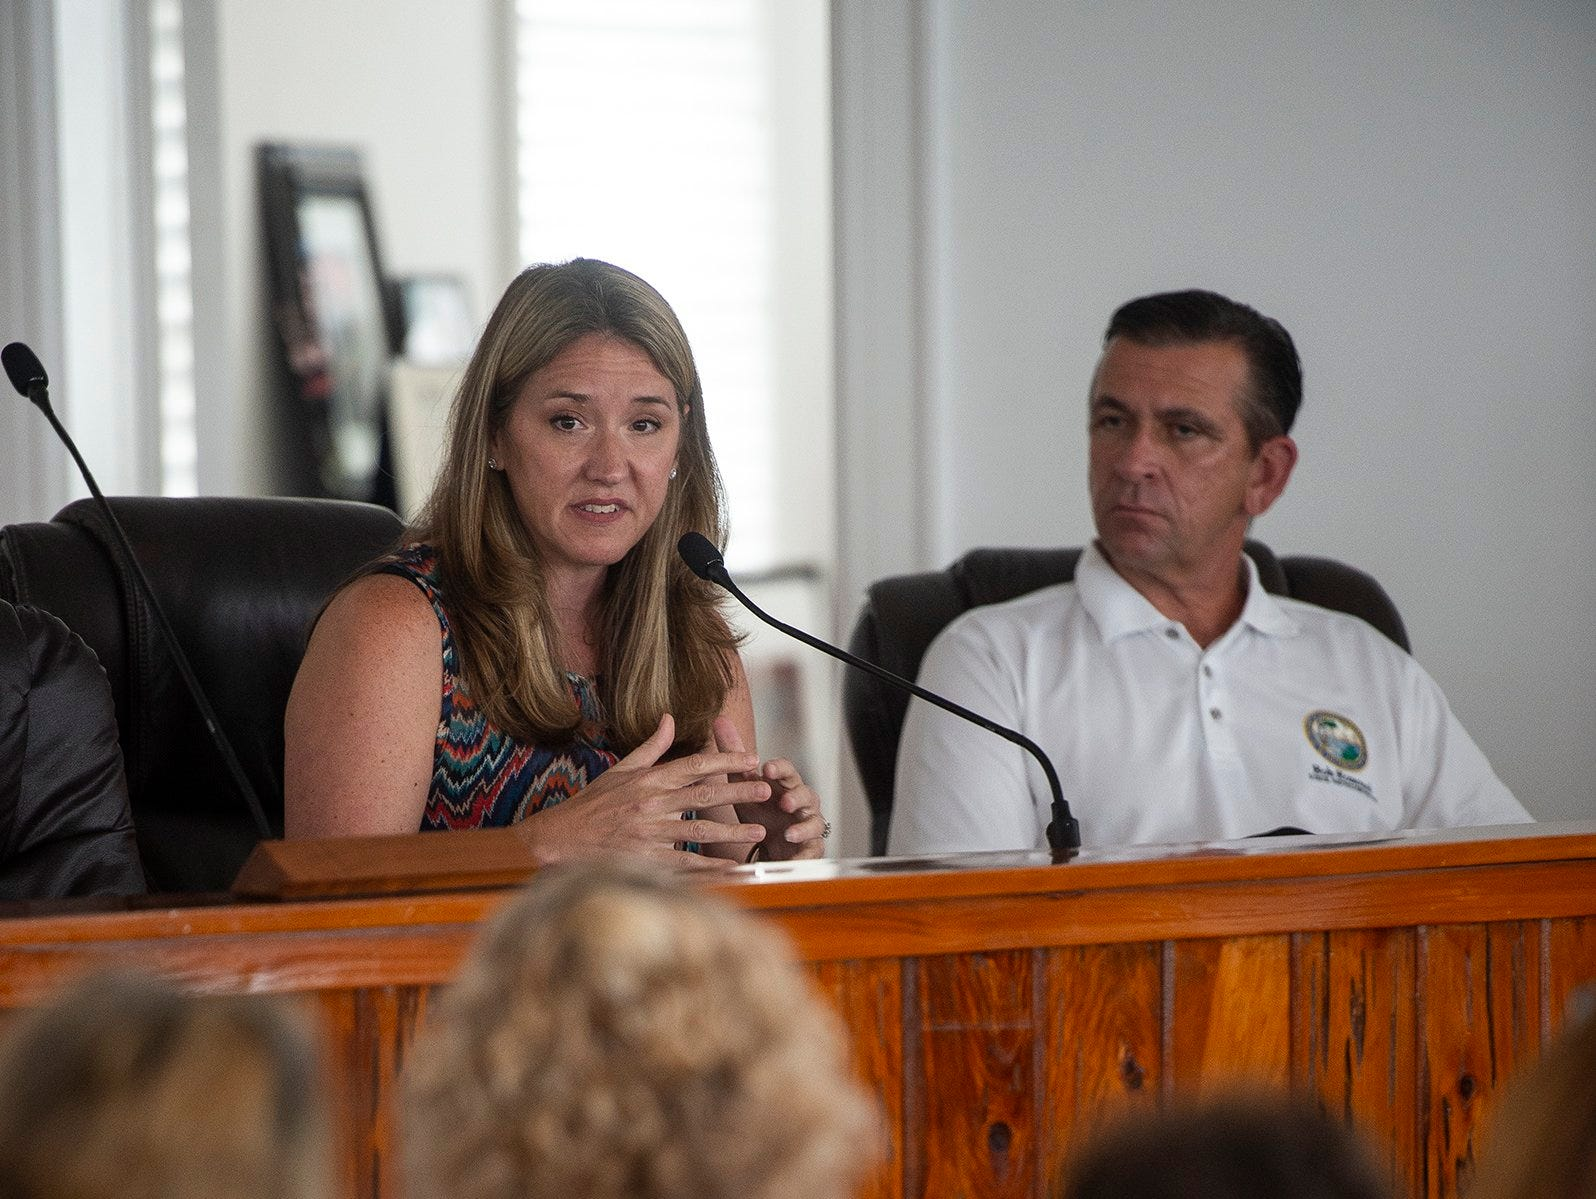 Florida Department of Economic Opportunity Director Cissy Proctor speaks during a press conference in Everglades City, Fla. on Monday, September 10, 2018. Elected officials took a tour of Everglades City, one of the areas hardest hit by Hurricane Irma, and discuseds the continued federal role in disaster recovery one year after Hurricane Irma landed in Florida.